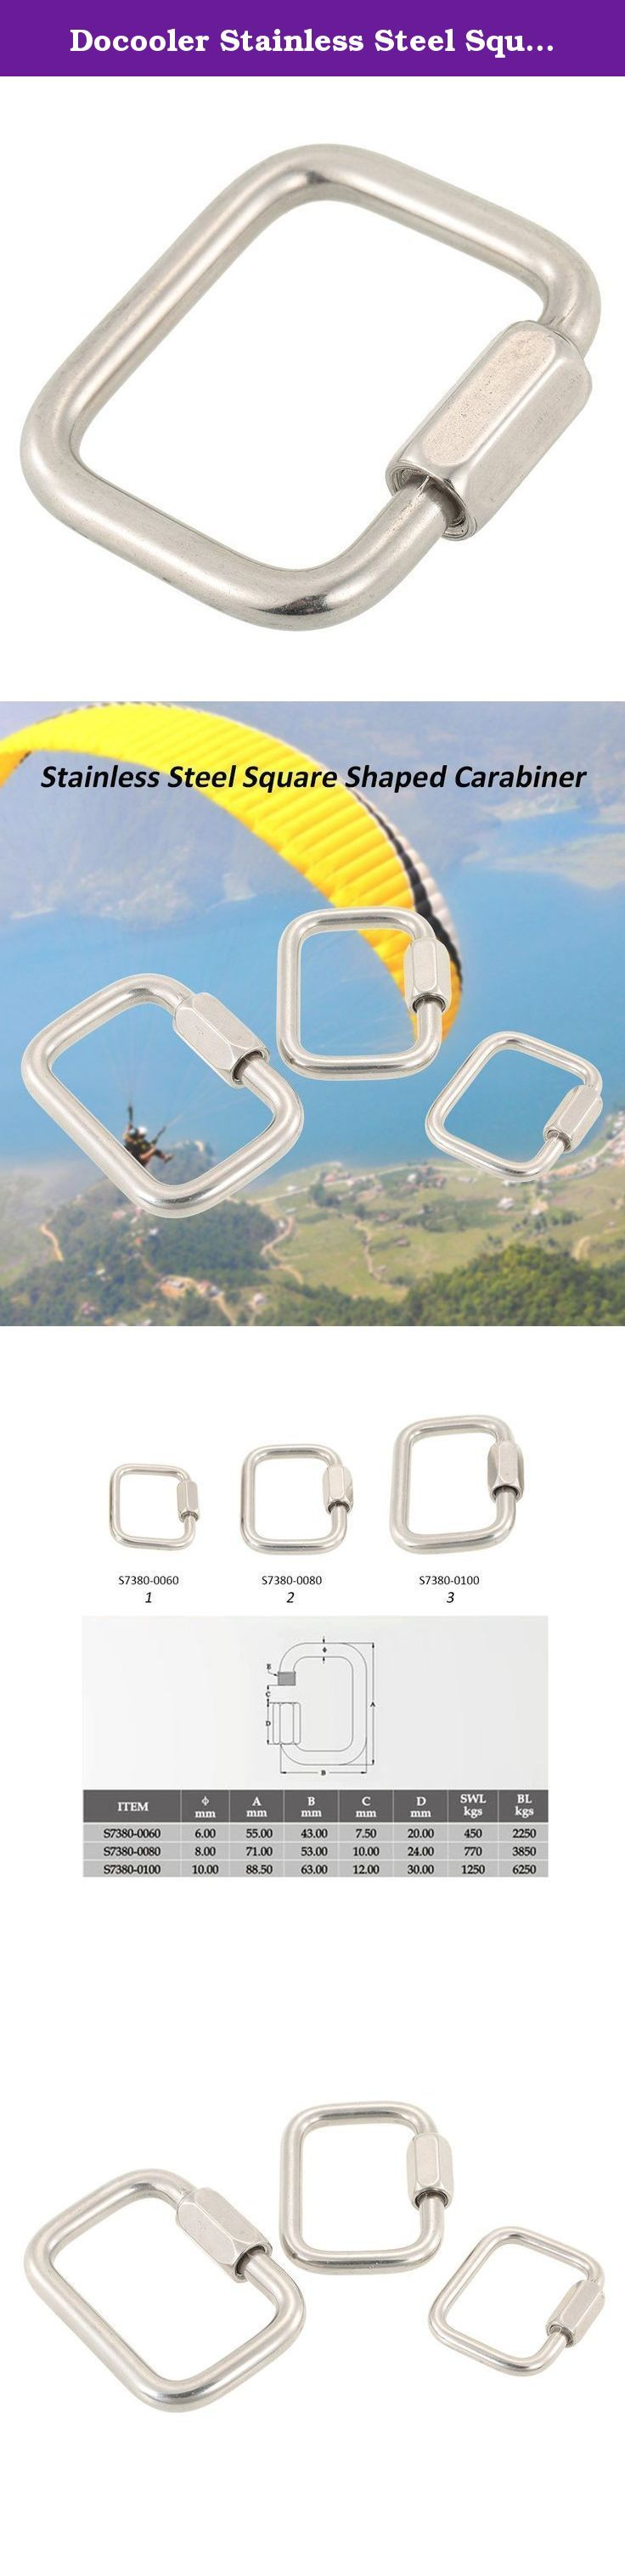 Docooler Stainless Steel Square Quick Link Locking Carabiner Hanging Hook Buckle for Paraglider Delta Wing Outdoor Camping Hiking. A good helper for outdoor camping, hiking, etc. Features: Made of hard stainless steel, high-strength and wear-resisting. Screw to lock the buckle, more secure and reliable. It can be used for hanging bottles, connecting tent and ropes, etc. A durable carabiner for paragliders and delta wings. Specifications: Material: Stainless steel Type: S7380-0060 /...